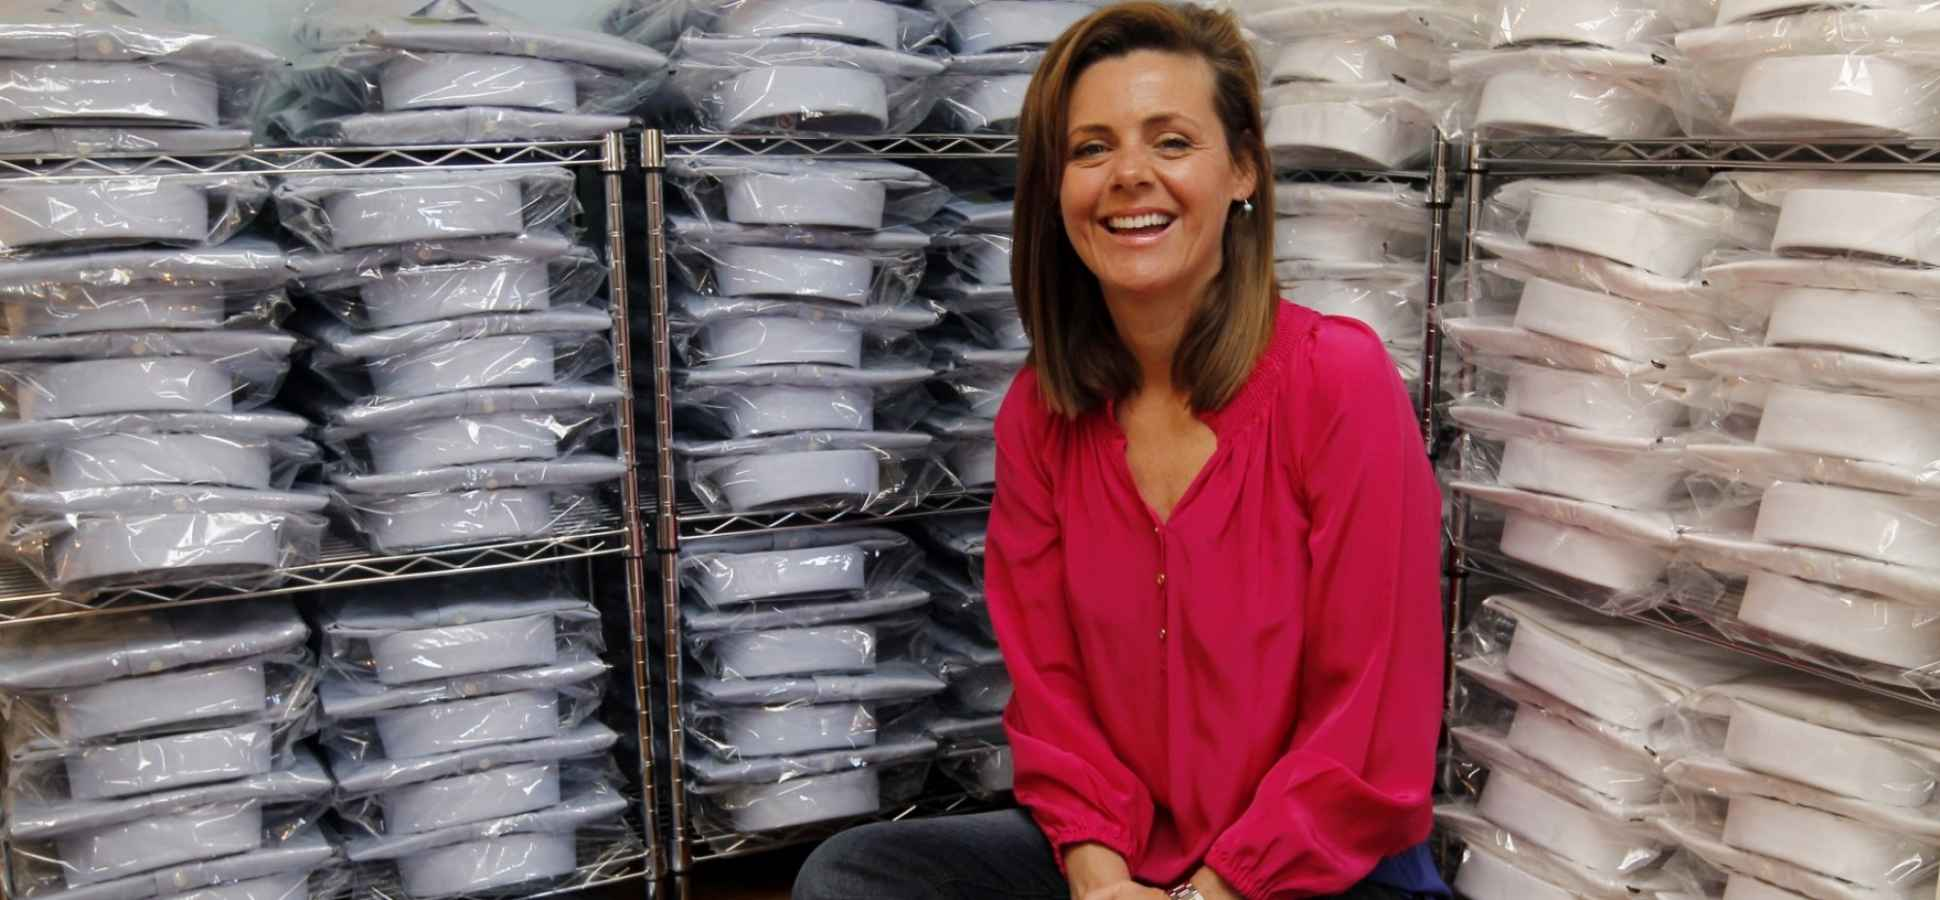 How This Adaptive Clothing Startup Scored a Deal With a Billion-Dollar Retailer